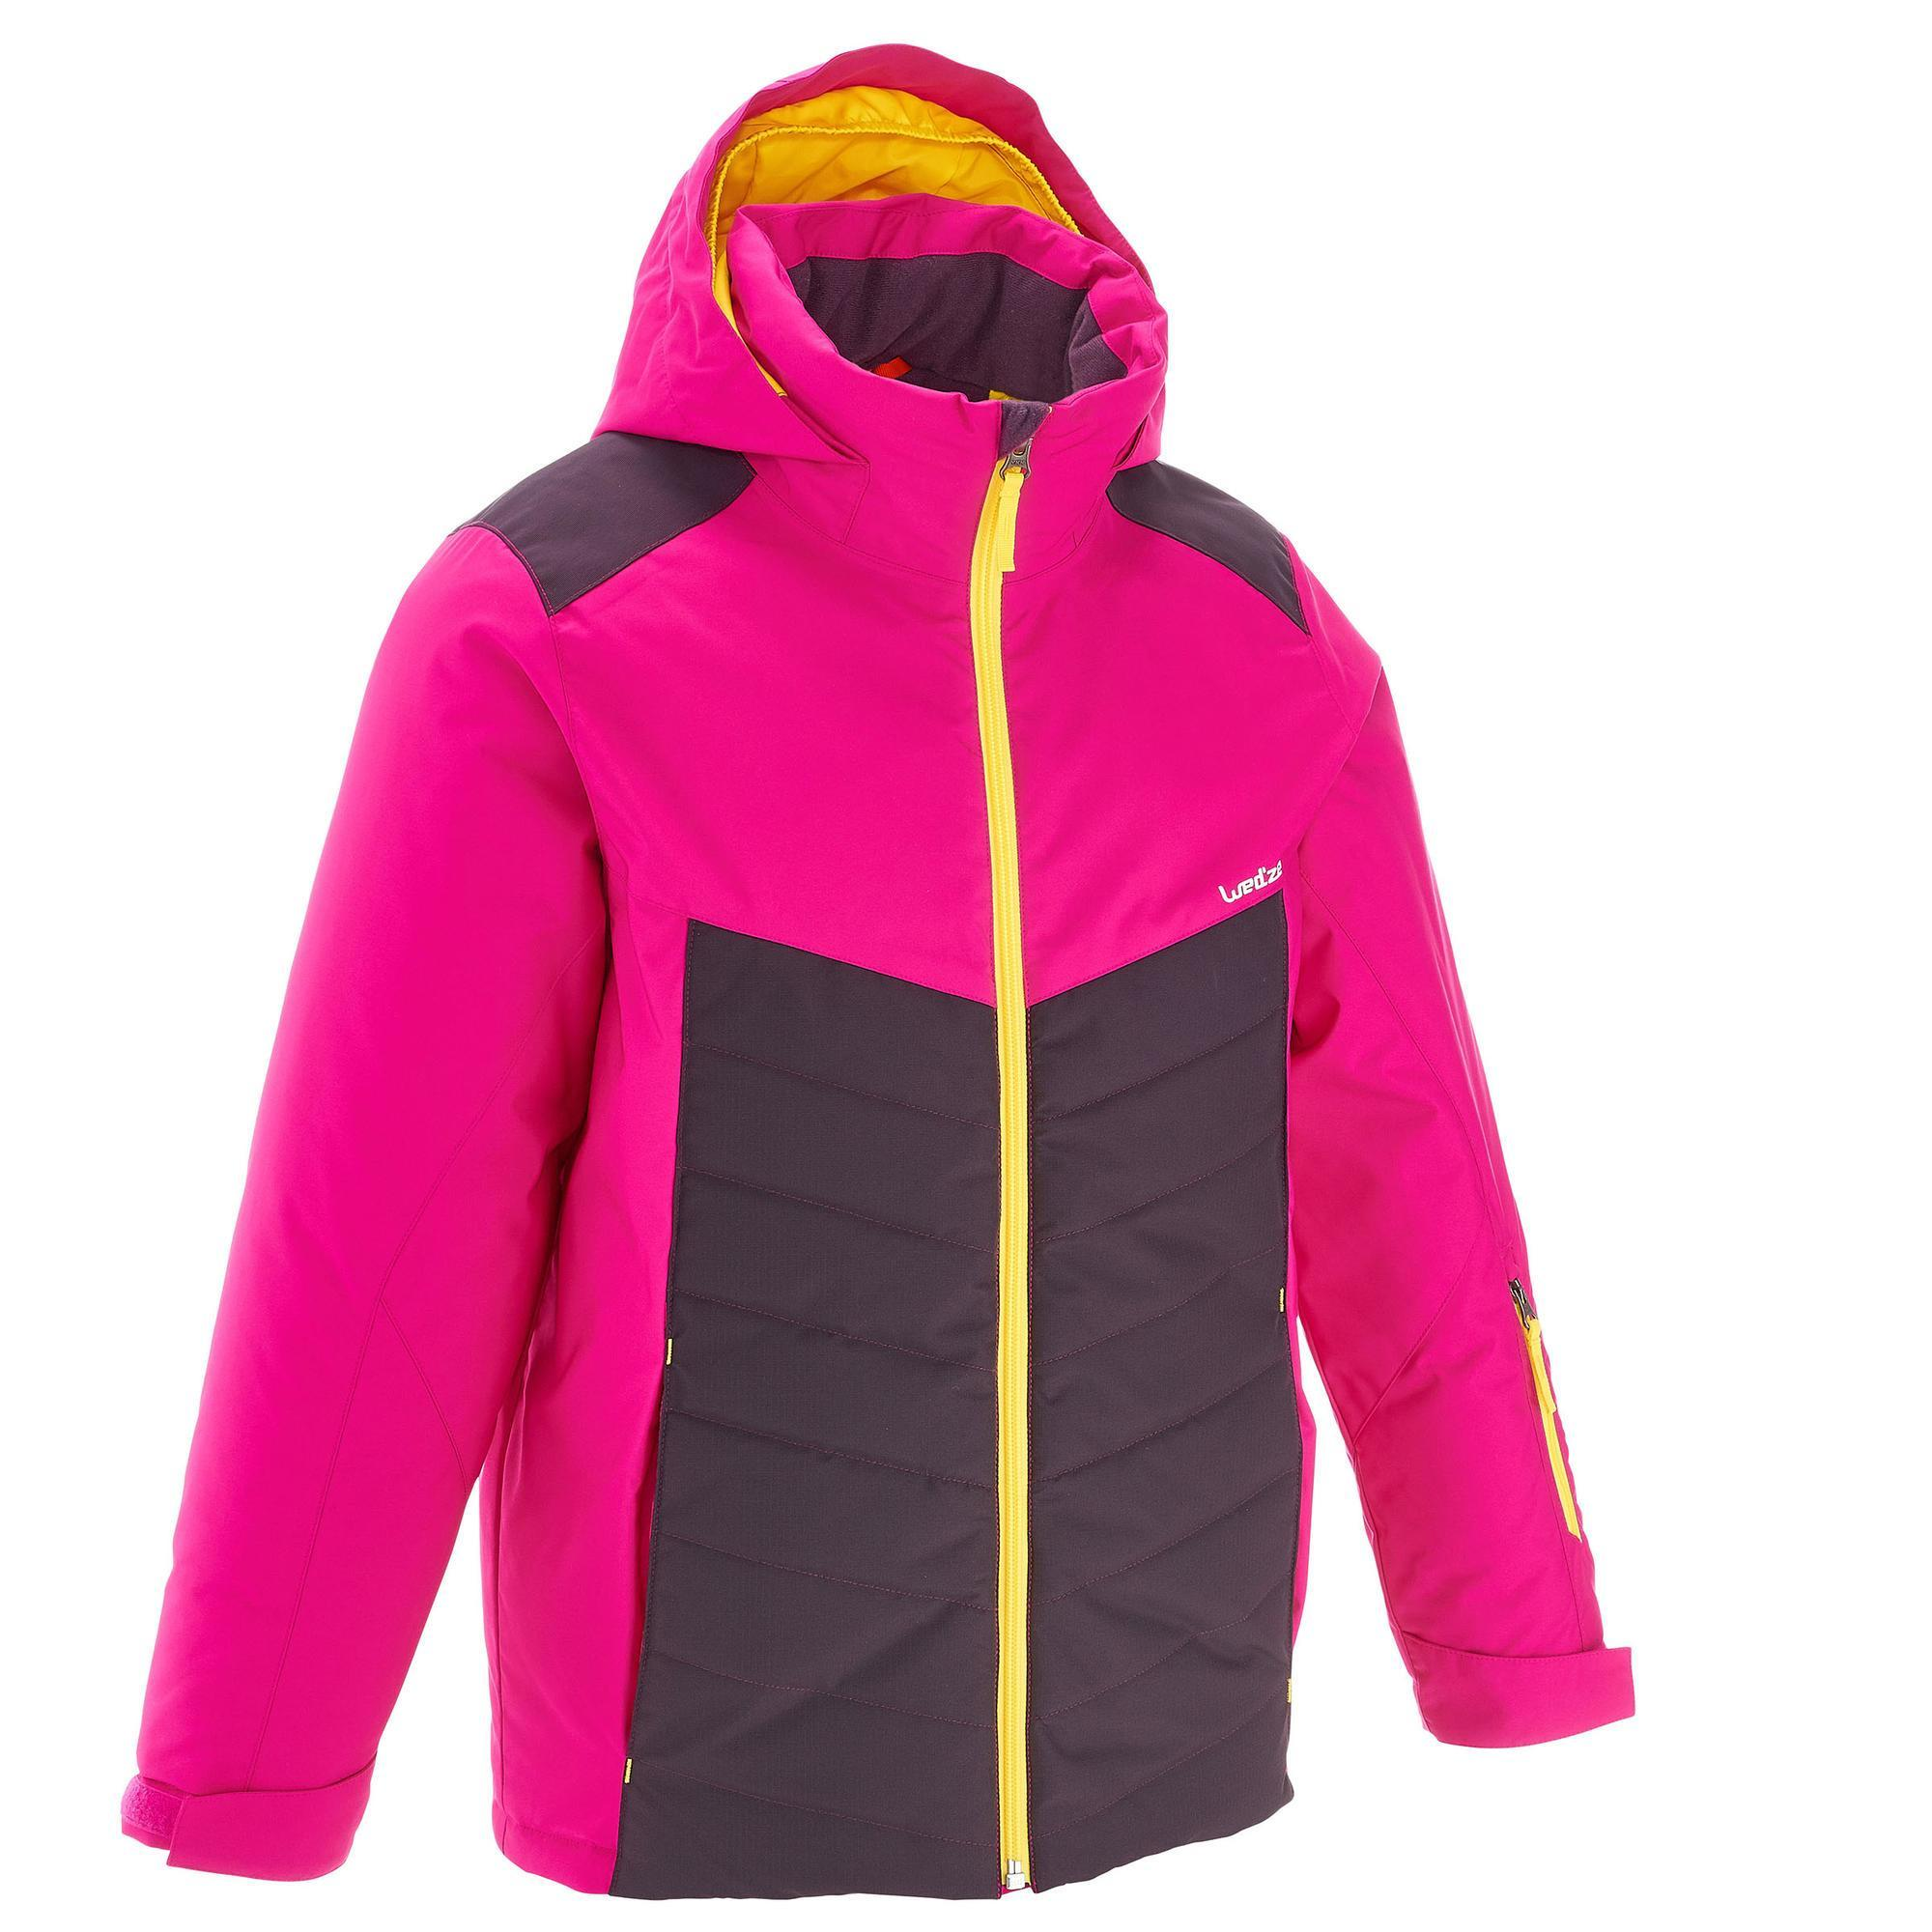 VESTE DE SKI ENFANT 300 ROSE Wedze | Decathlon